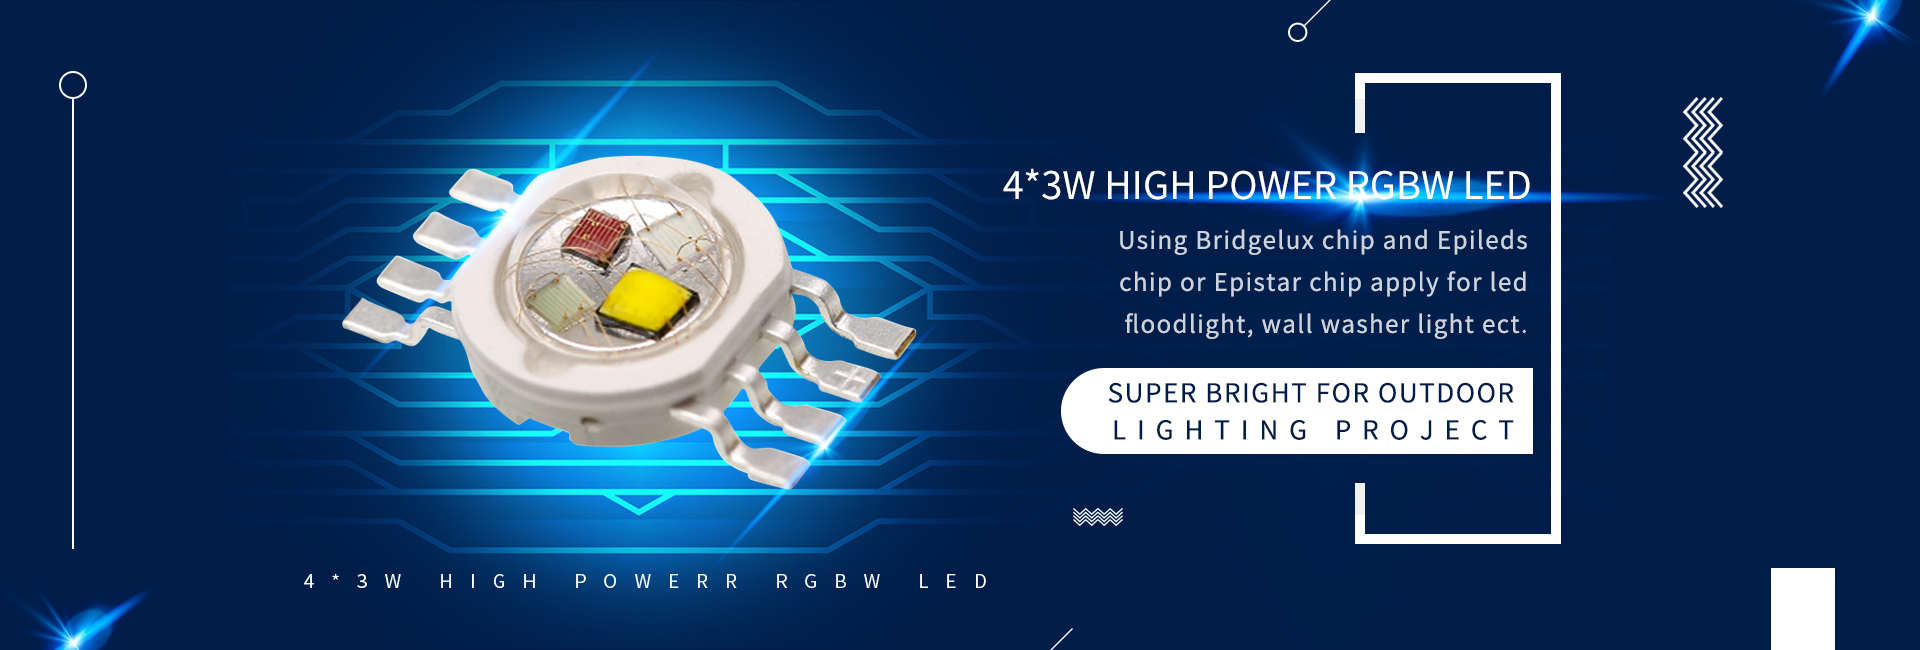 4*3W GIGH POWER RGBW LED